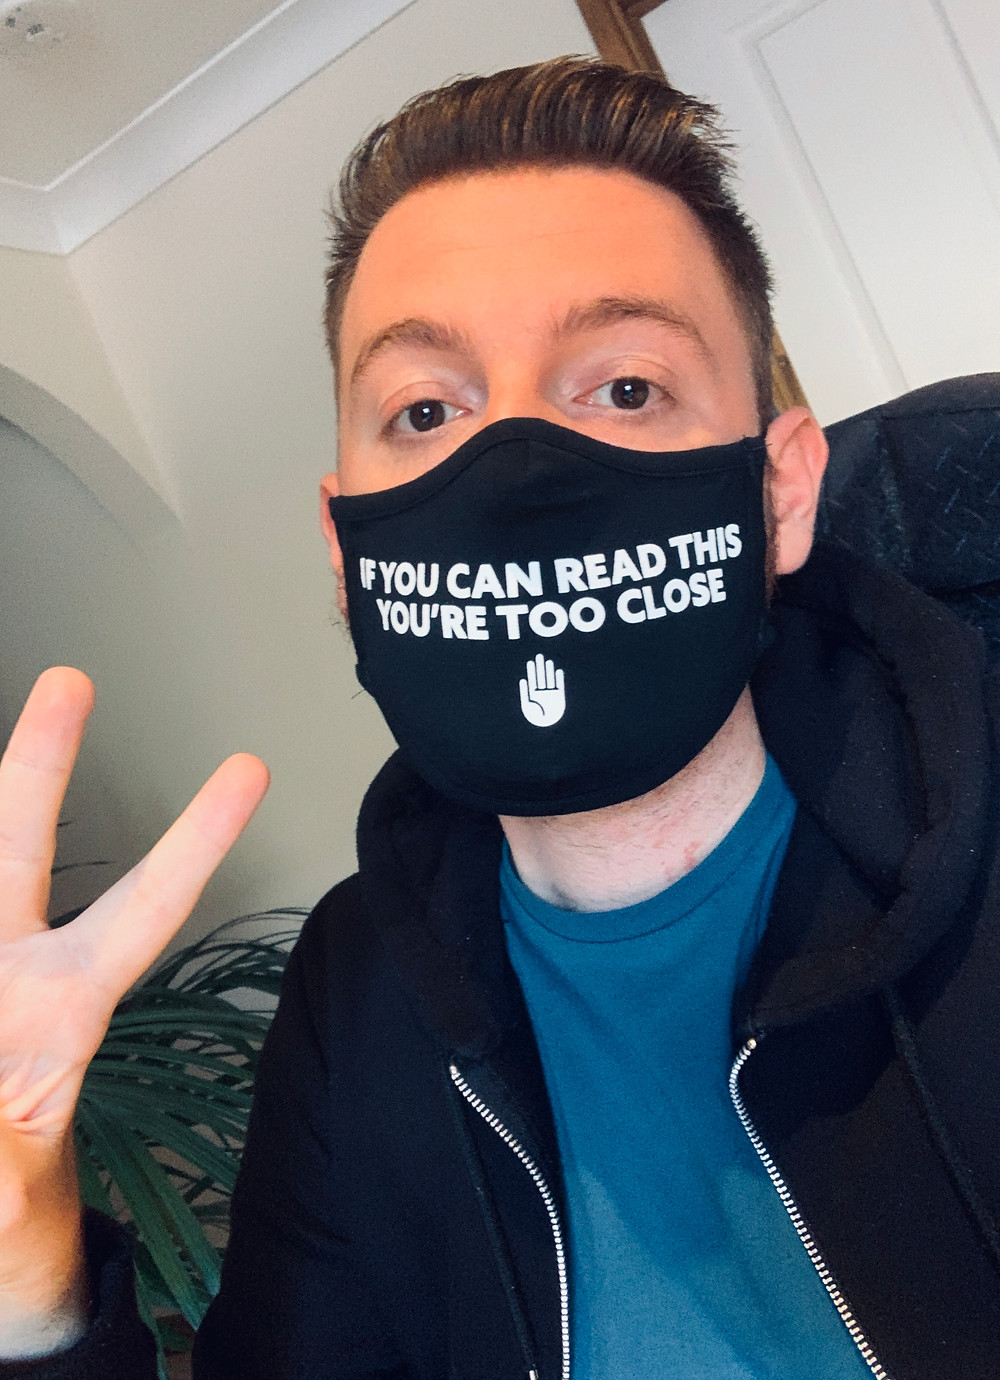 Selfie of Ross wearing a face mask with the text: If you can read this, you're too close